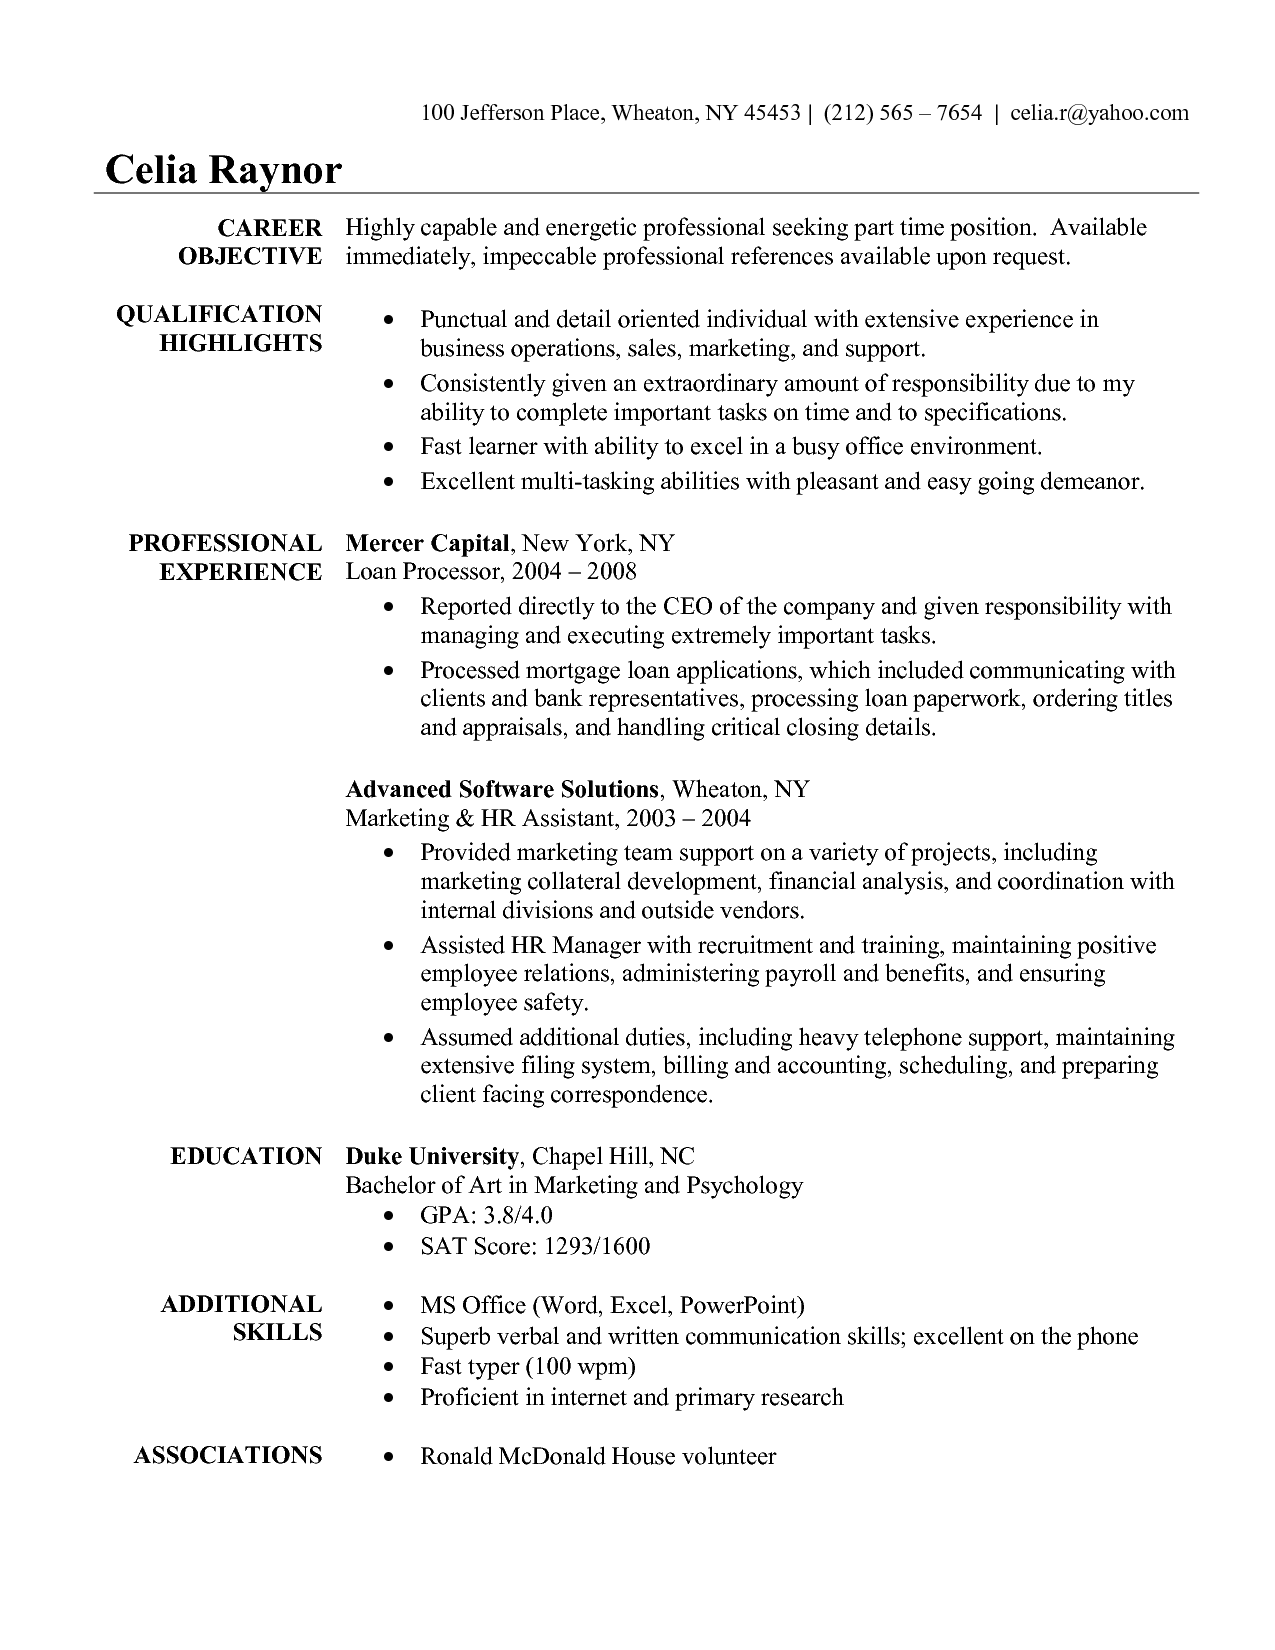 sample resume skills section resume sample of skills section complaint letter draft with proficient resume skills - Sample Resume Skills Section